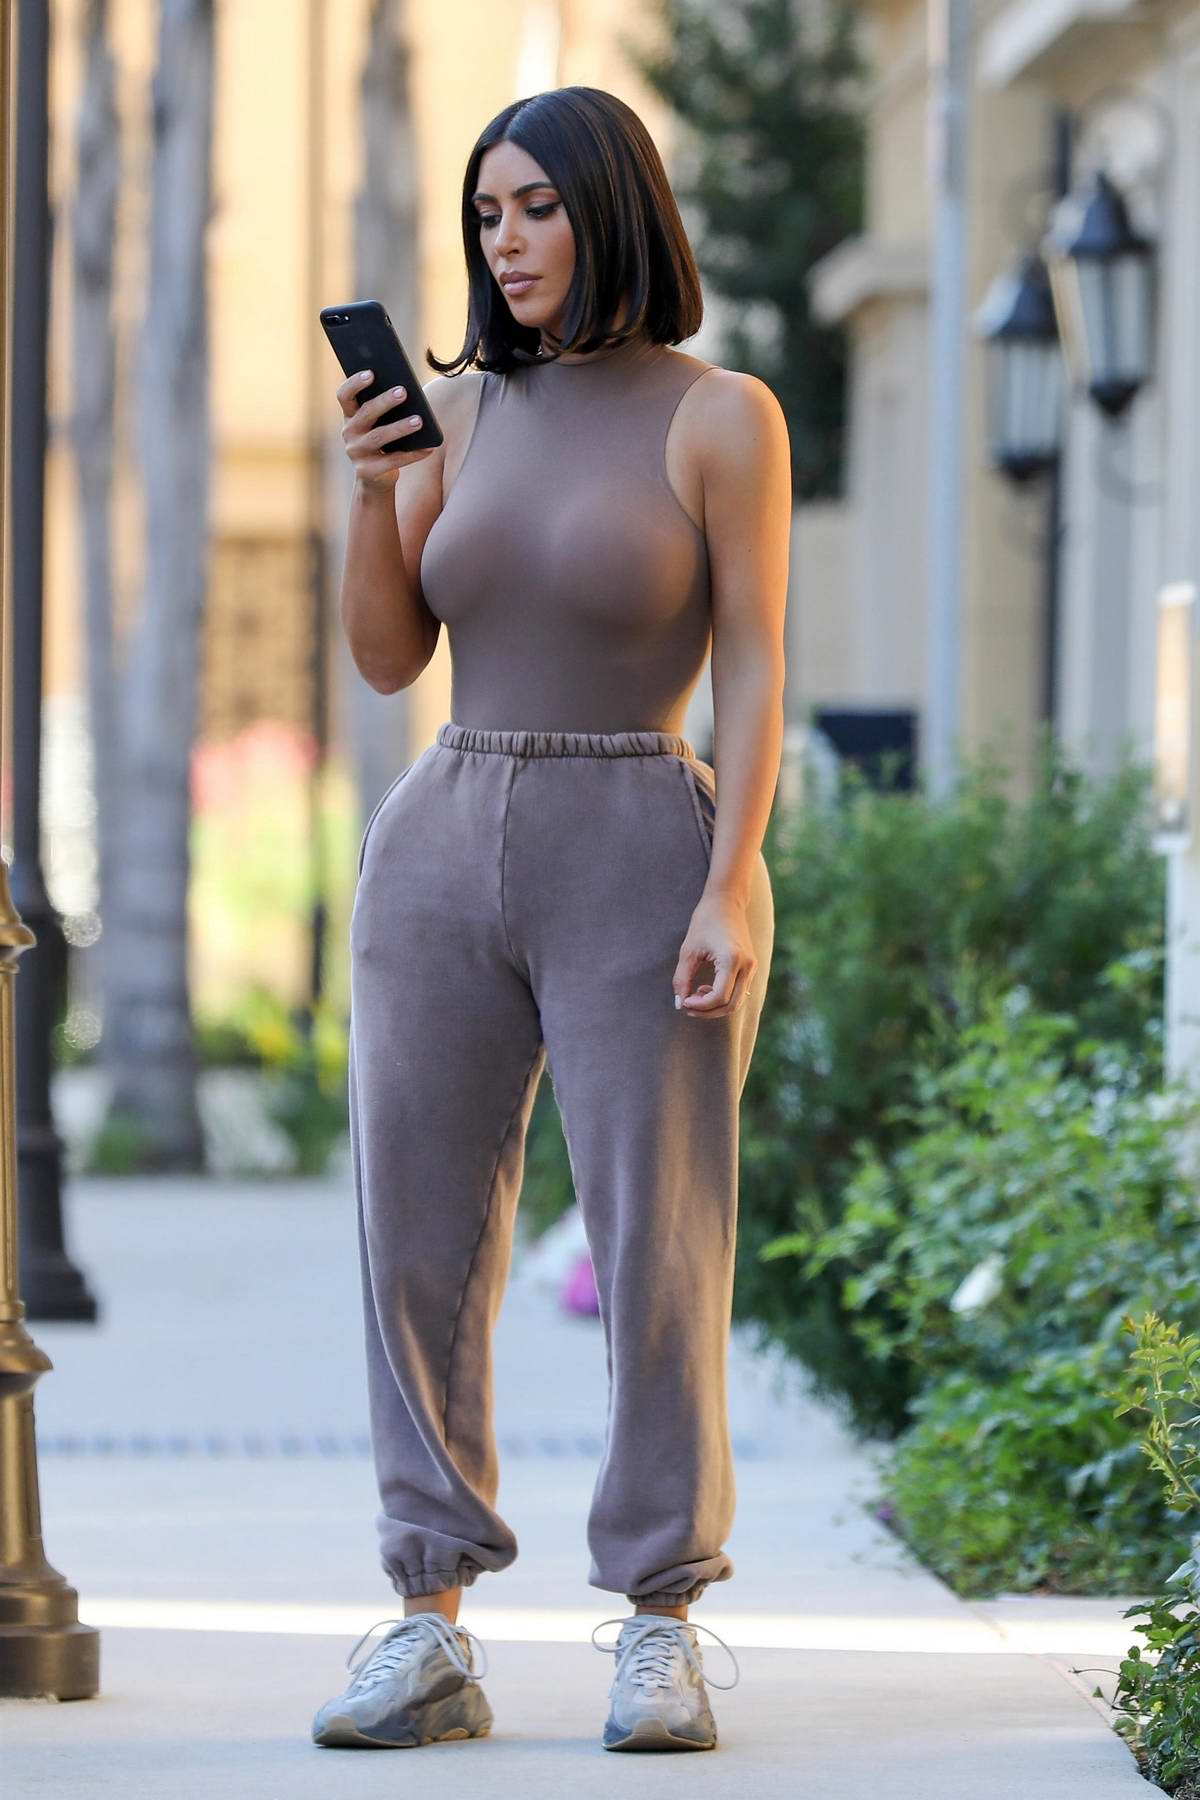 Kim Kardashian spotted in a form-fitting sleeveless top as she leaves her office in Calabasas, California